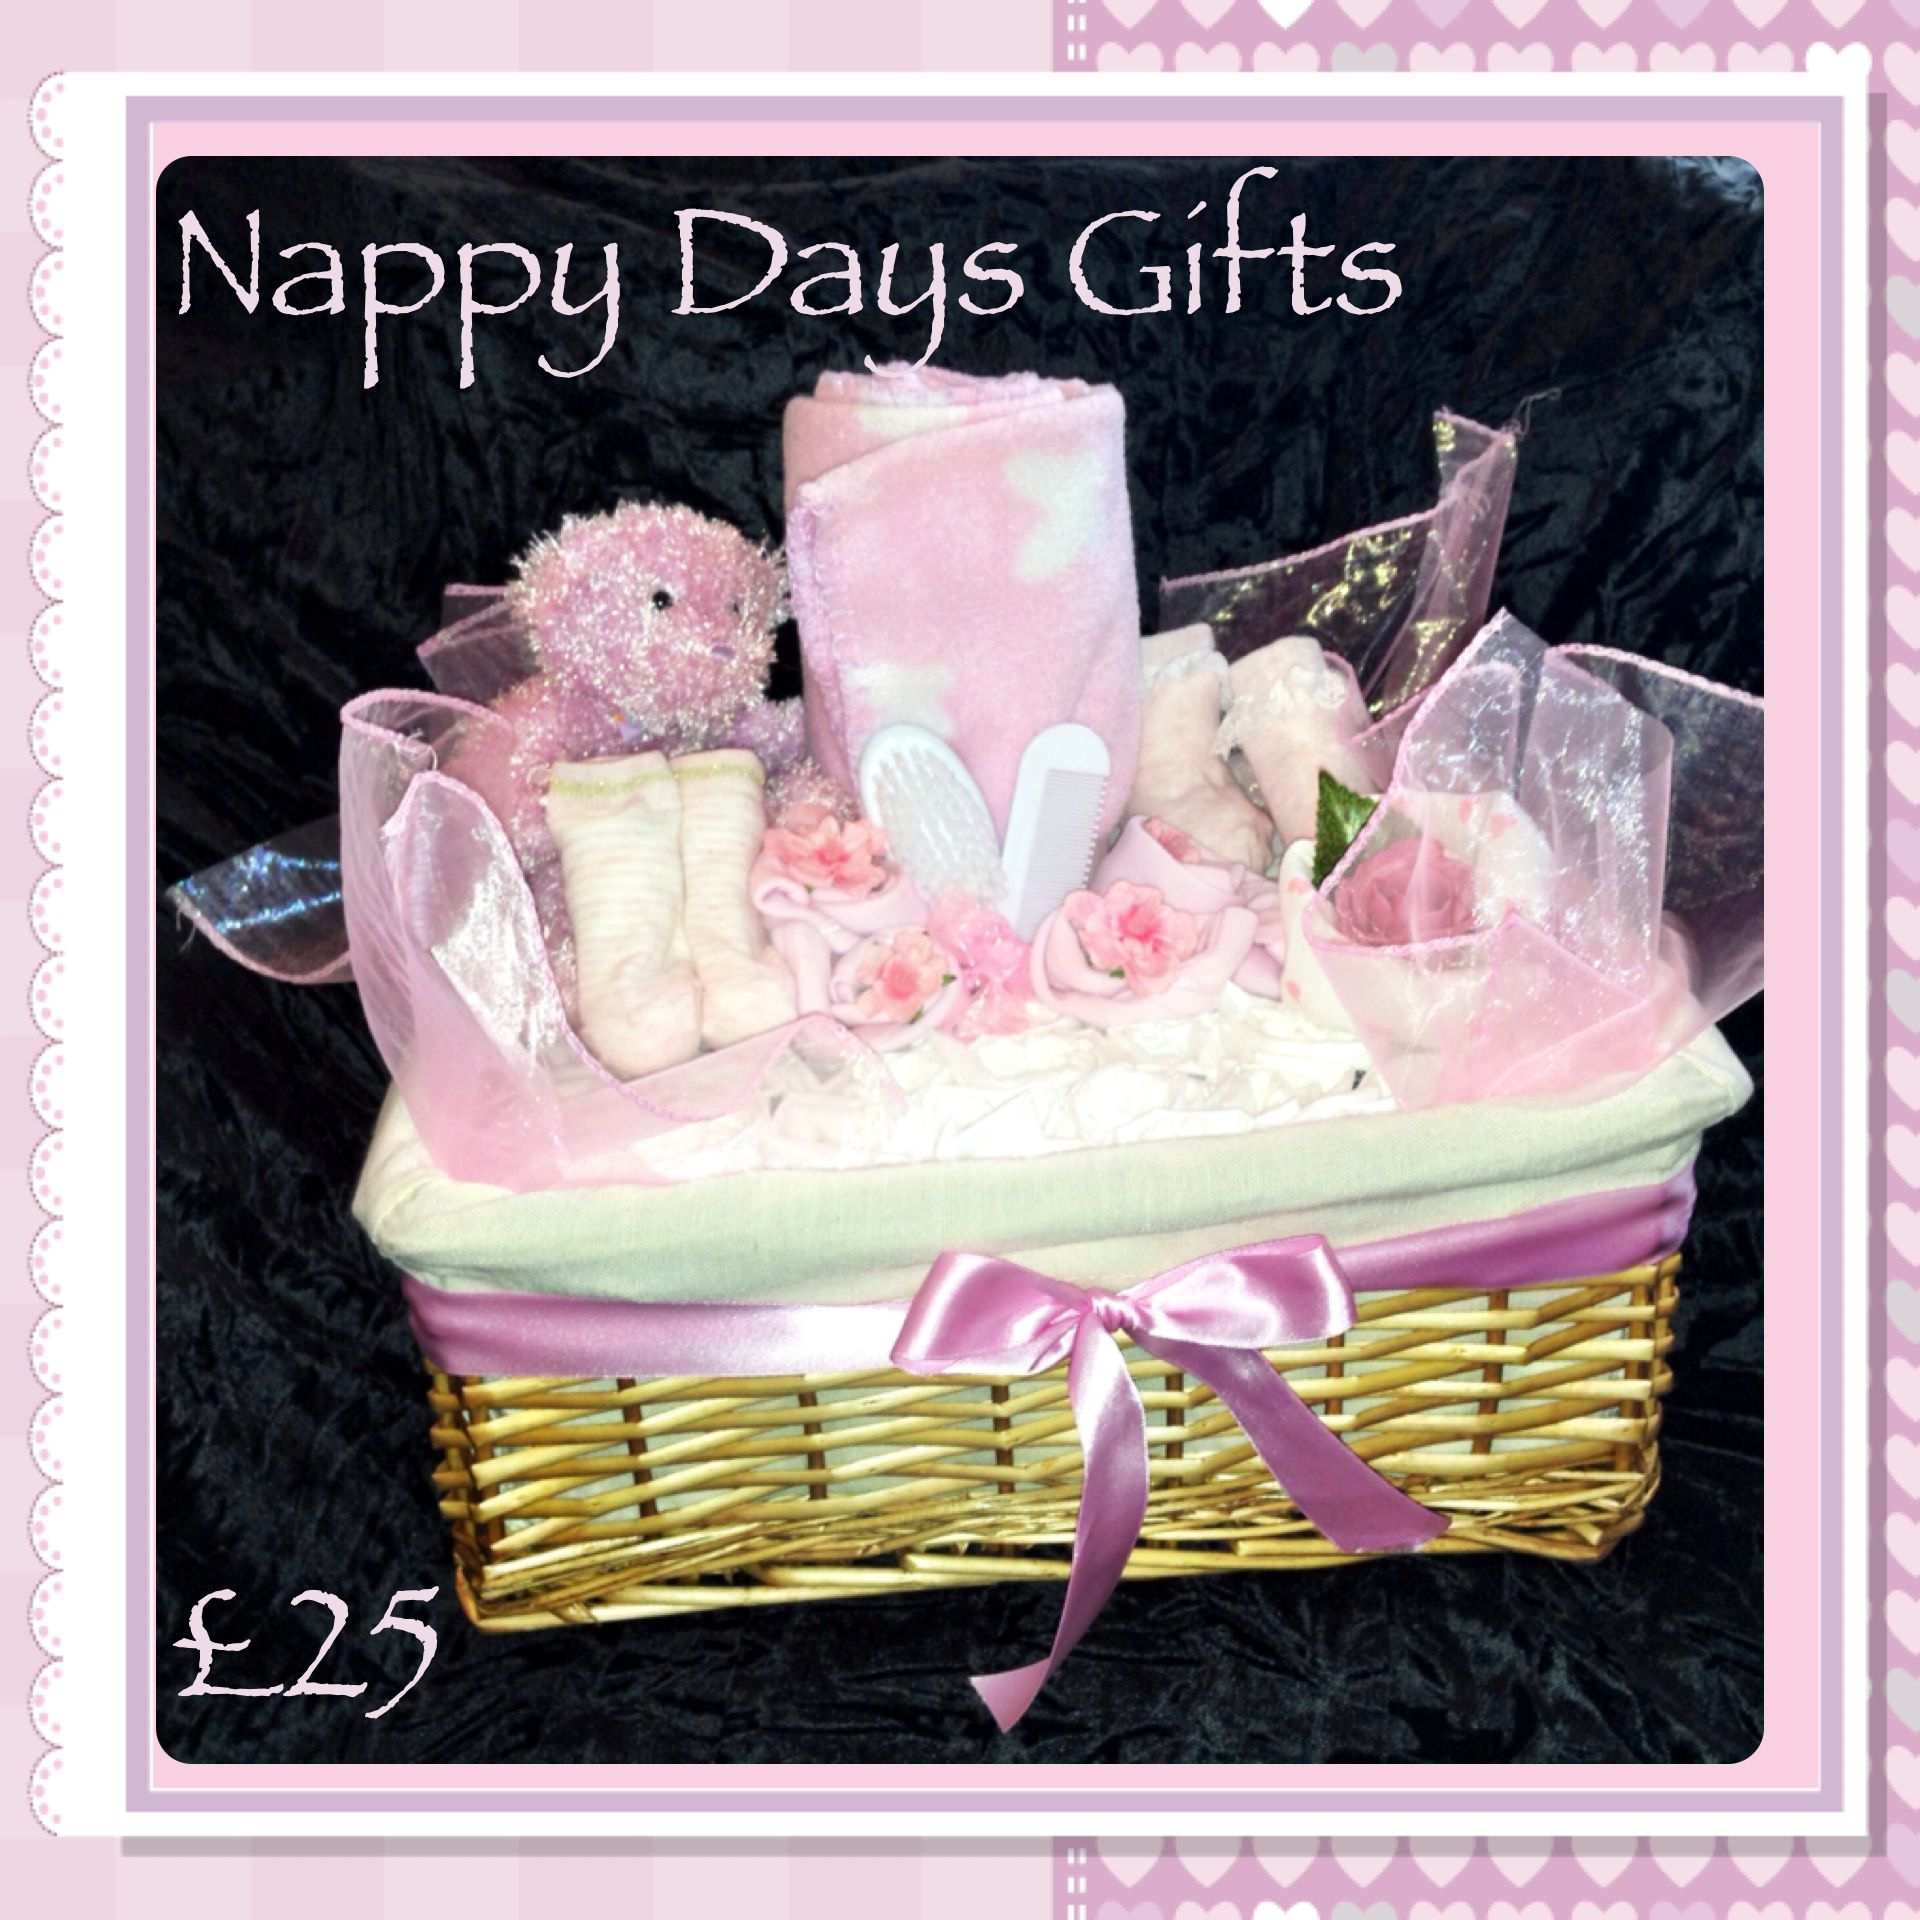 Nappy Hamper - £25  Includes soft fleece blanket, newborn nappies, 2 pairs of socks, brush and comb set, muslin square and vest roses and cute teddy.  Also available in blue or neutral colours